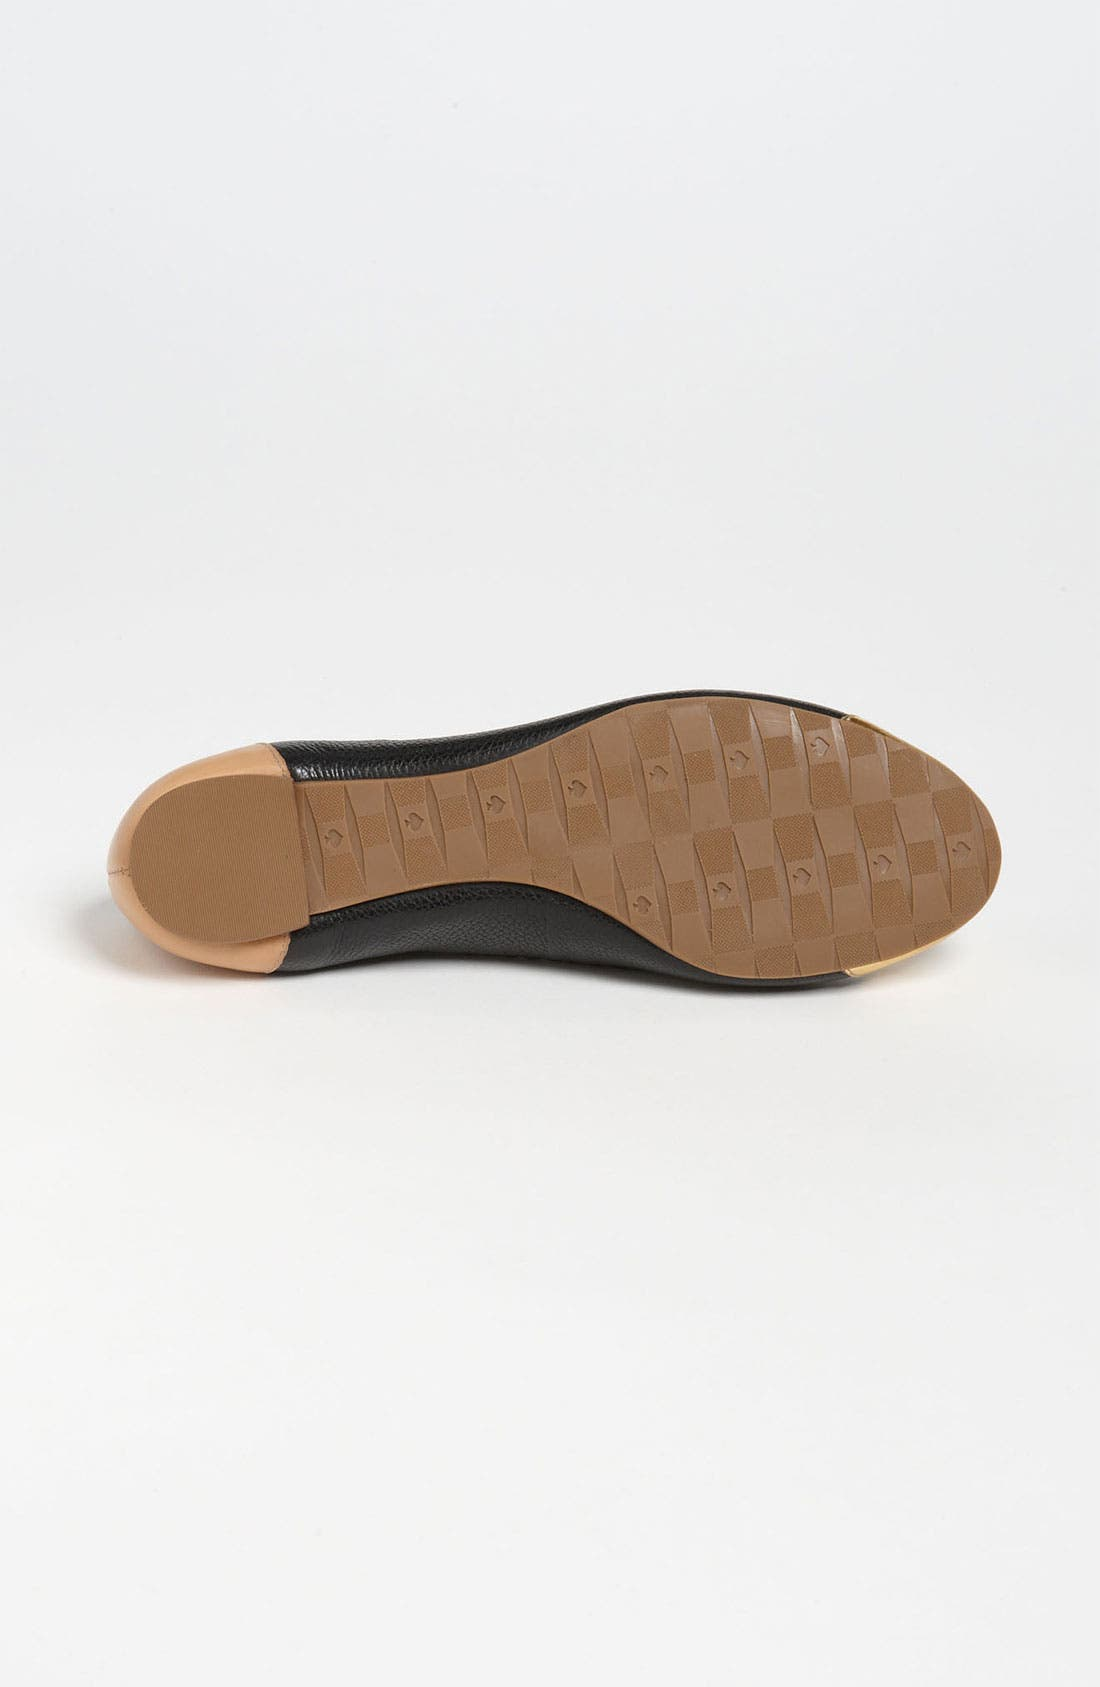 KATE SPADE TERRY FLAT,                             Alternate thumbnail 3, color,                             001